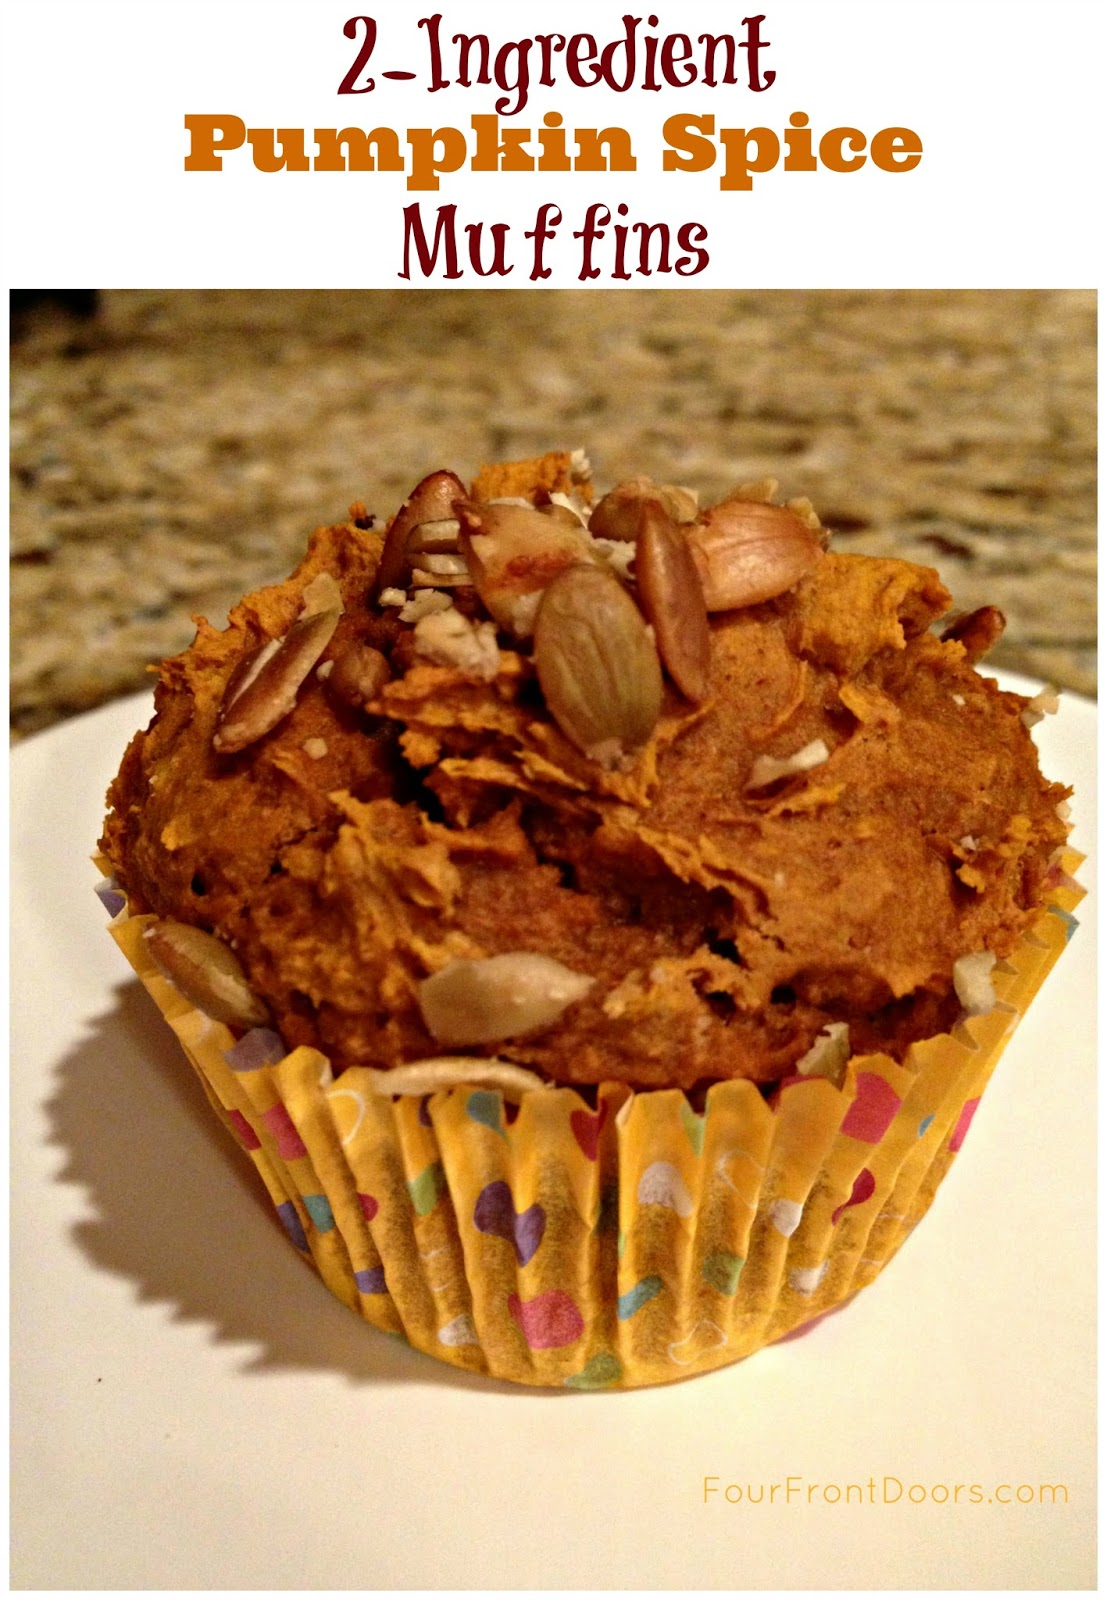 Four Front Doors: 2-Ingredient Pumpkin Spice Muffins